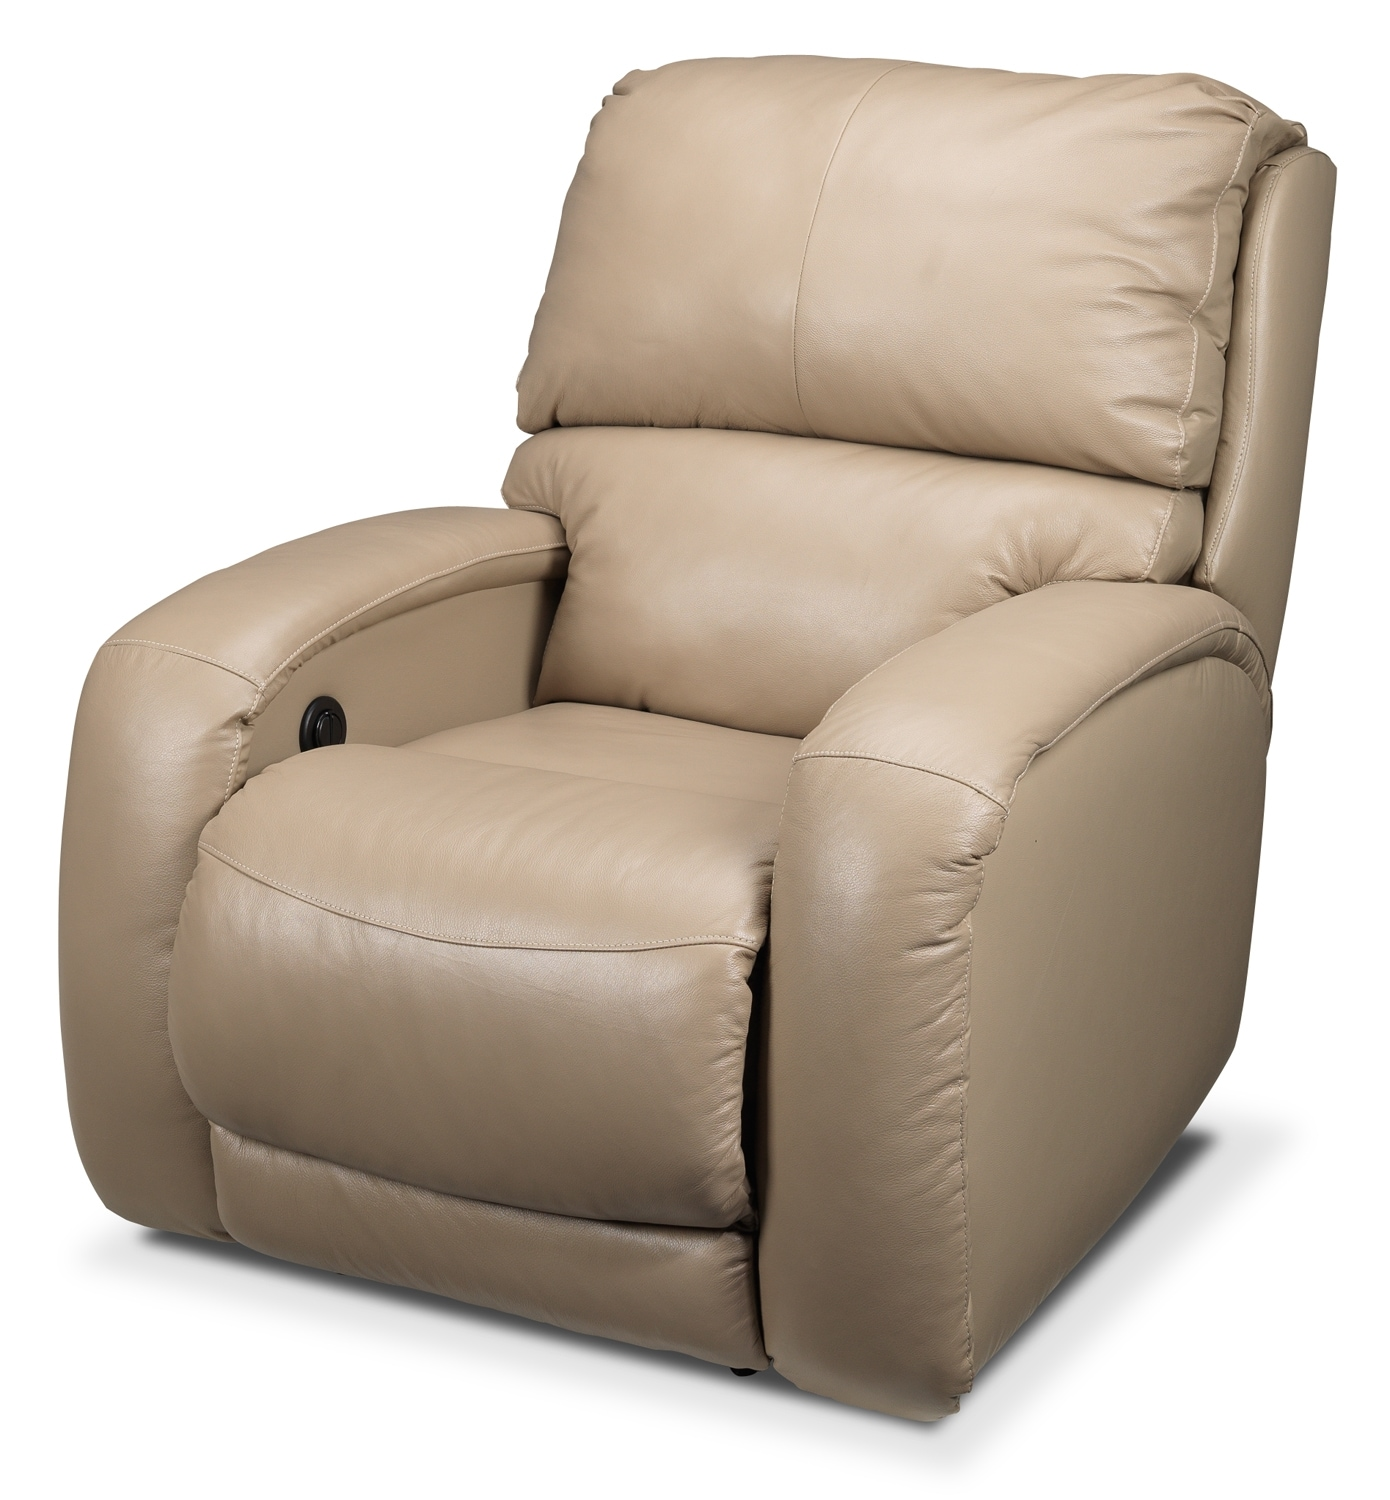 [Fabian Power Recliner - Beige]